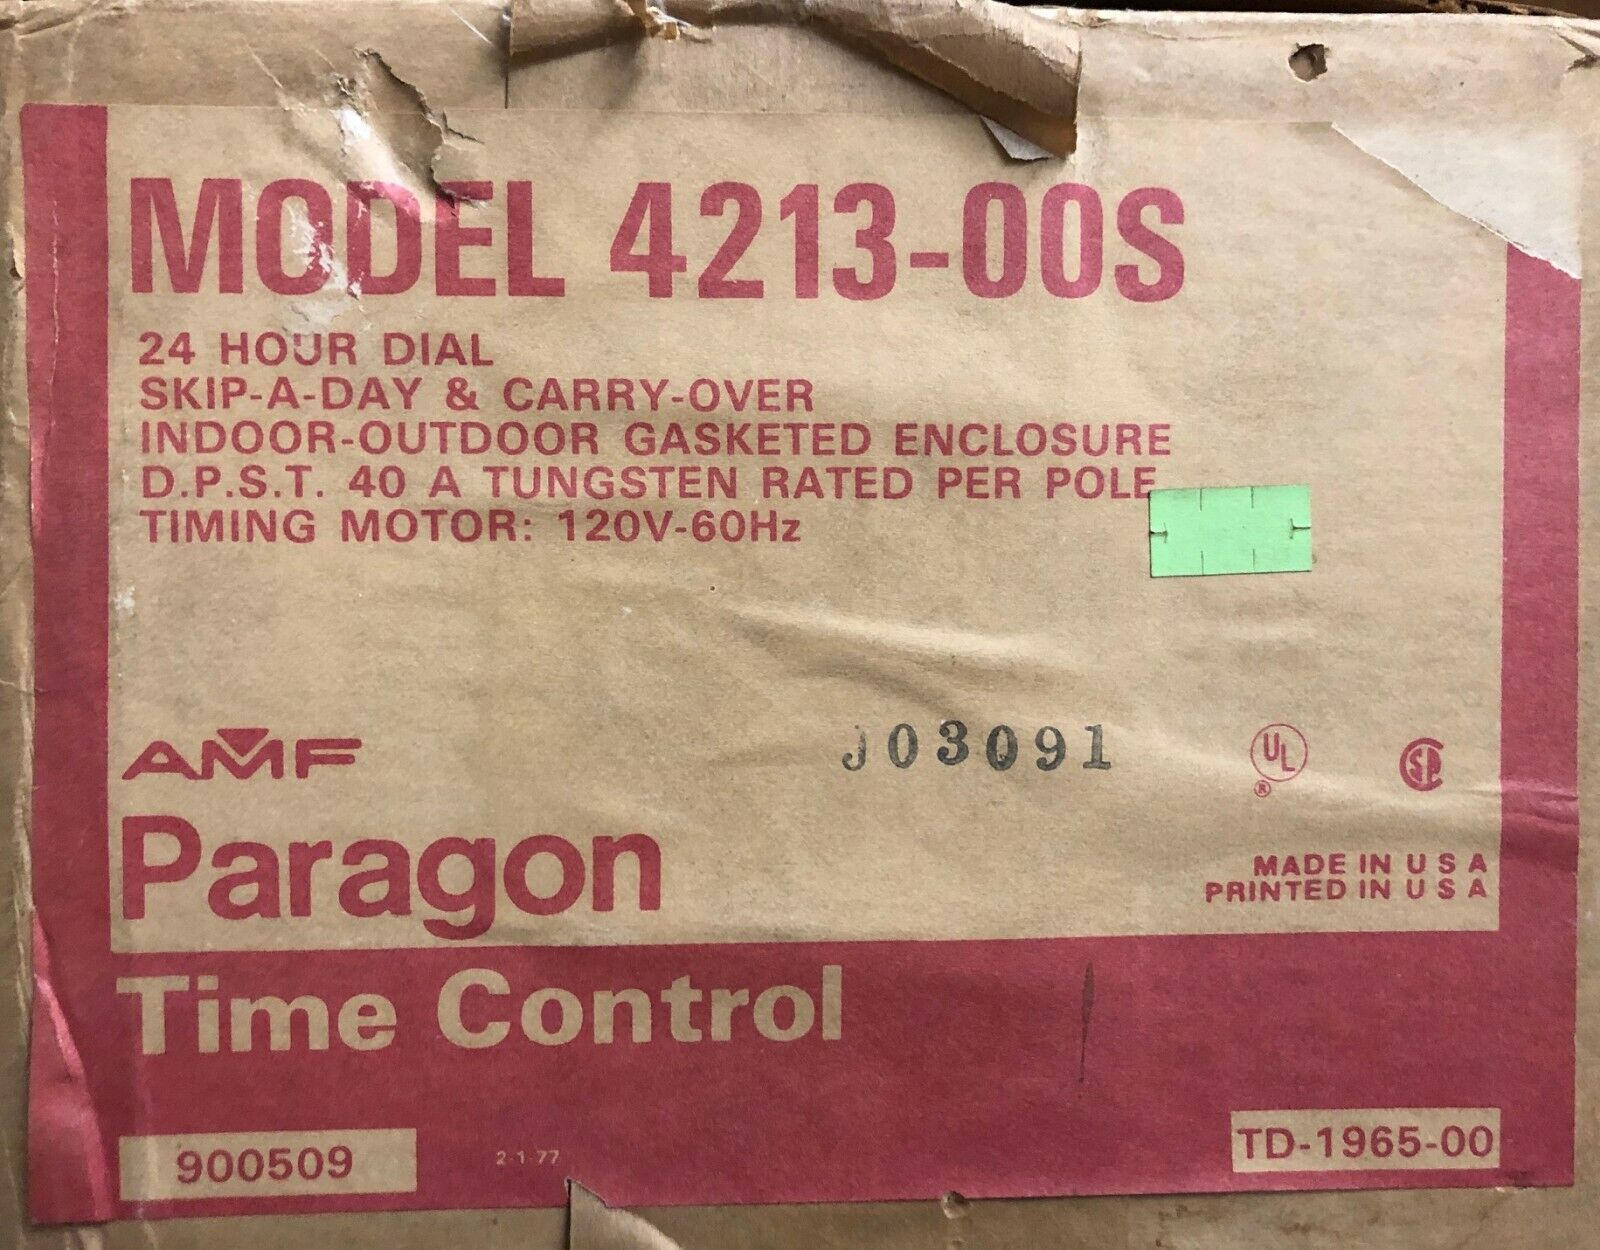 AMF Paragon 4213-00S Time control